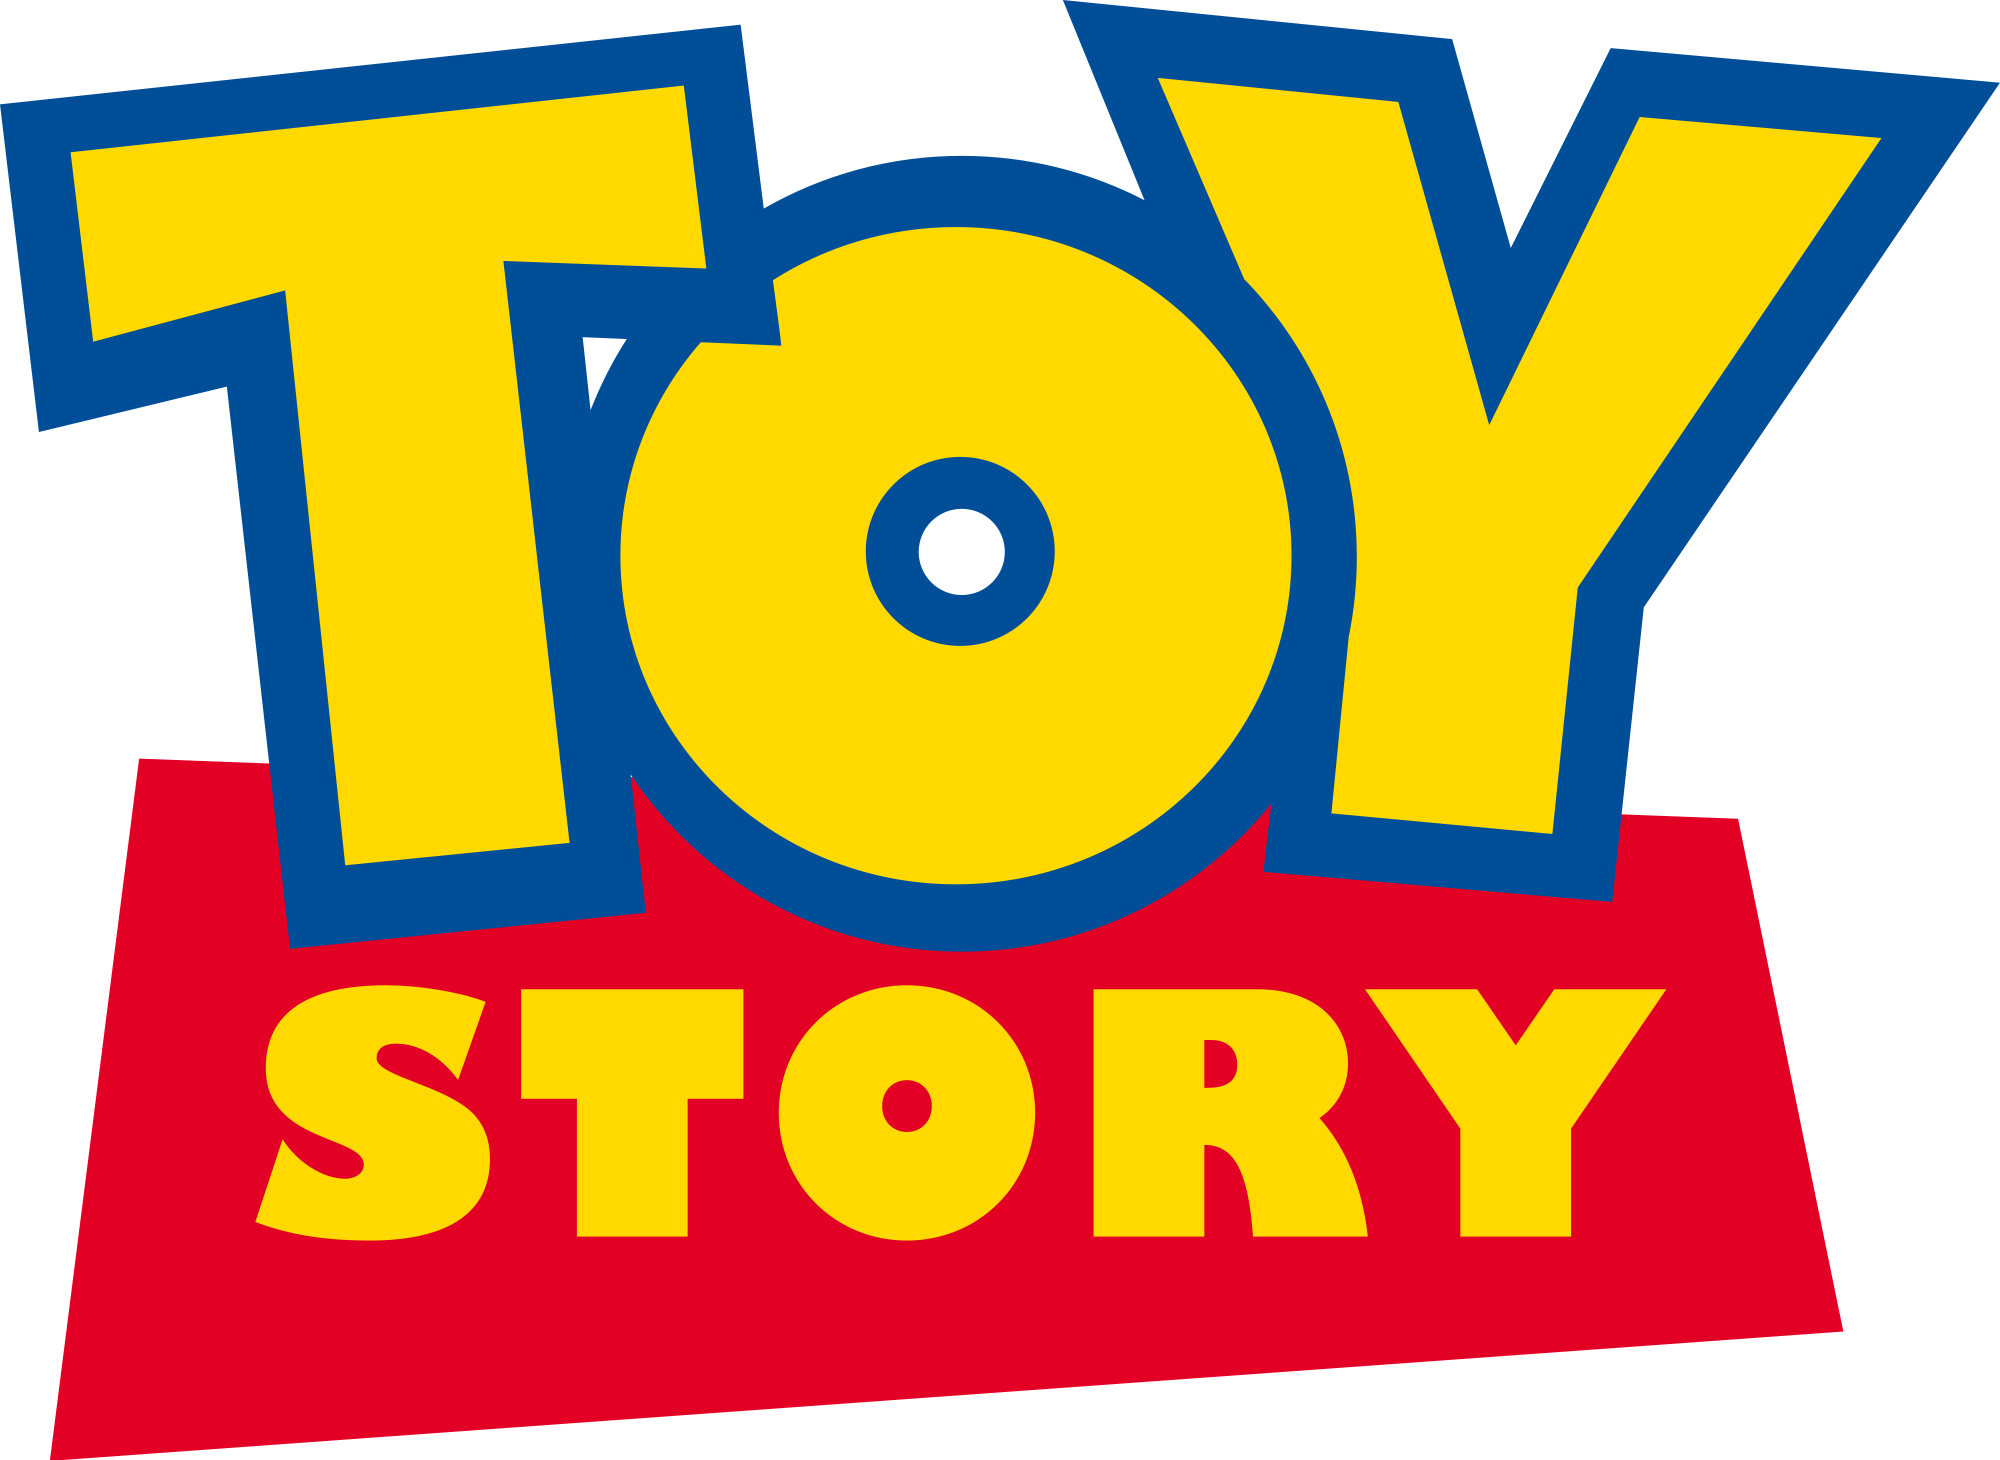 Toy Story 4 Is Hitting Theaters This Summer And We've got Some New Characters Joining The Squad - Check Out The Teaser HERE!